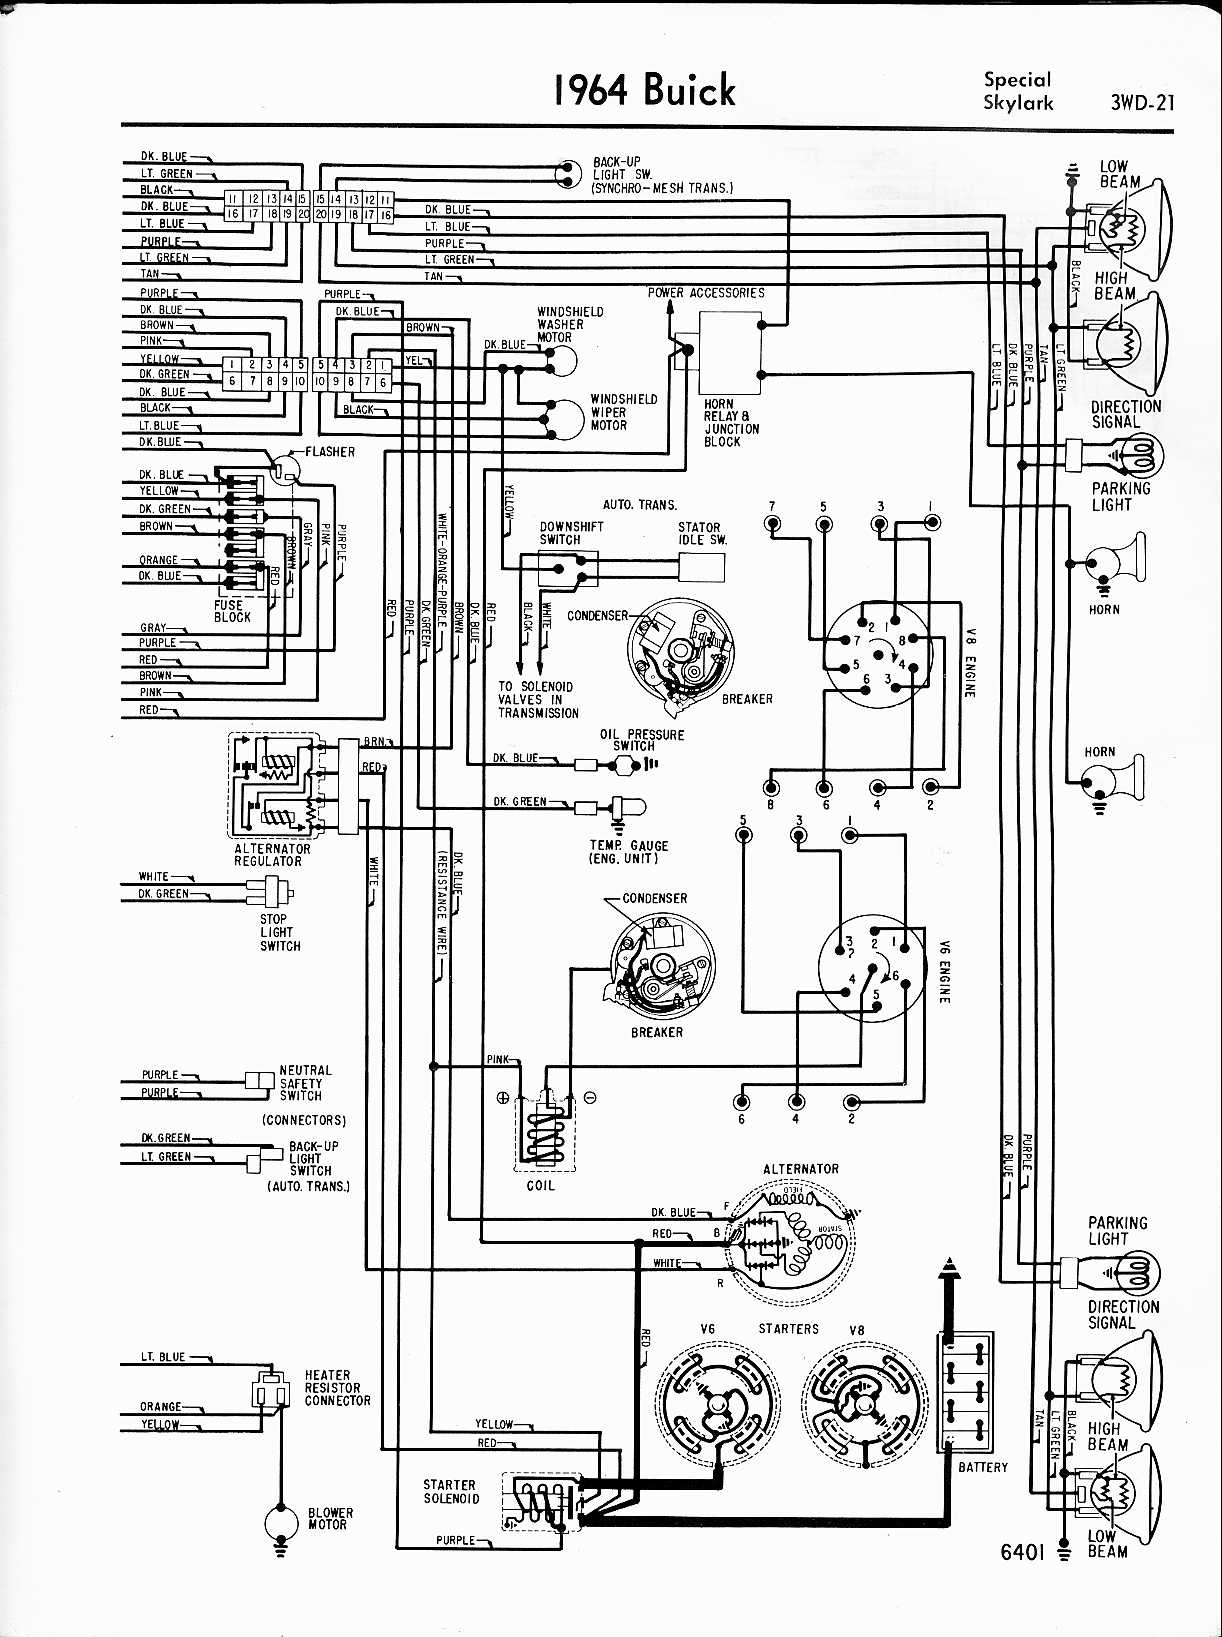 Wiring Diagram For 1972 Buick Skylark Just Data 68 Camaro Pdf 1966 Riviera Simple 2010 Lacrosse